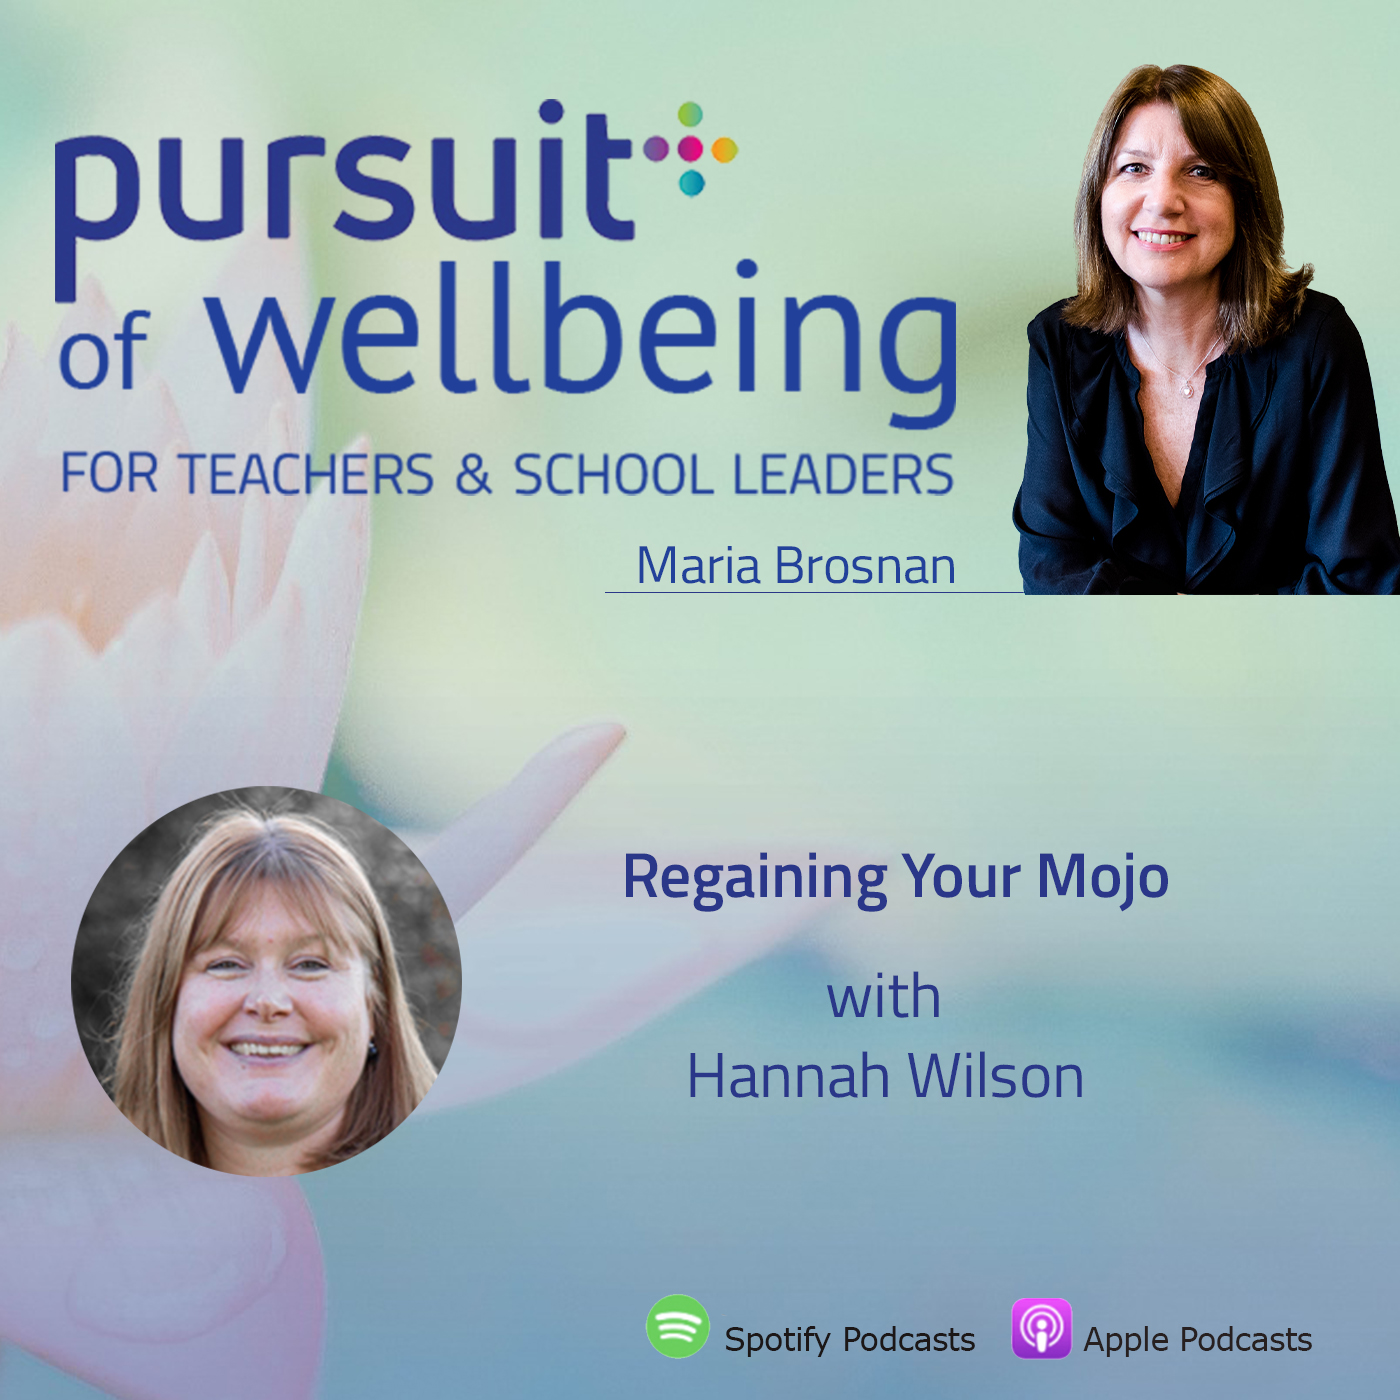 Regaining Your Mojo with Hannah Wilson